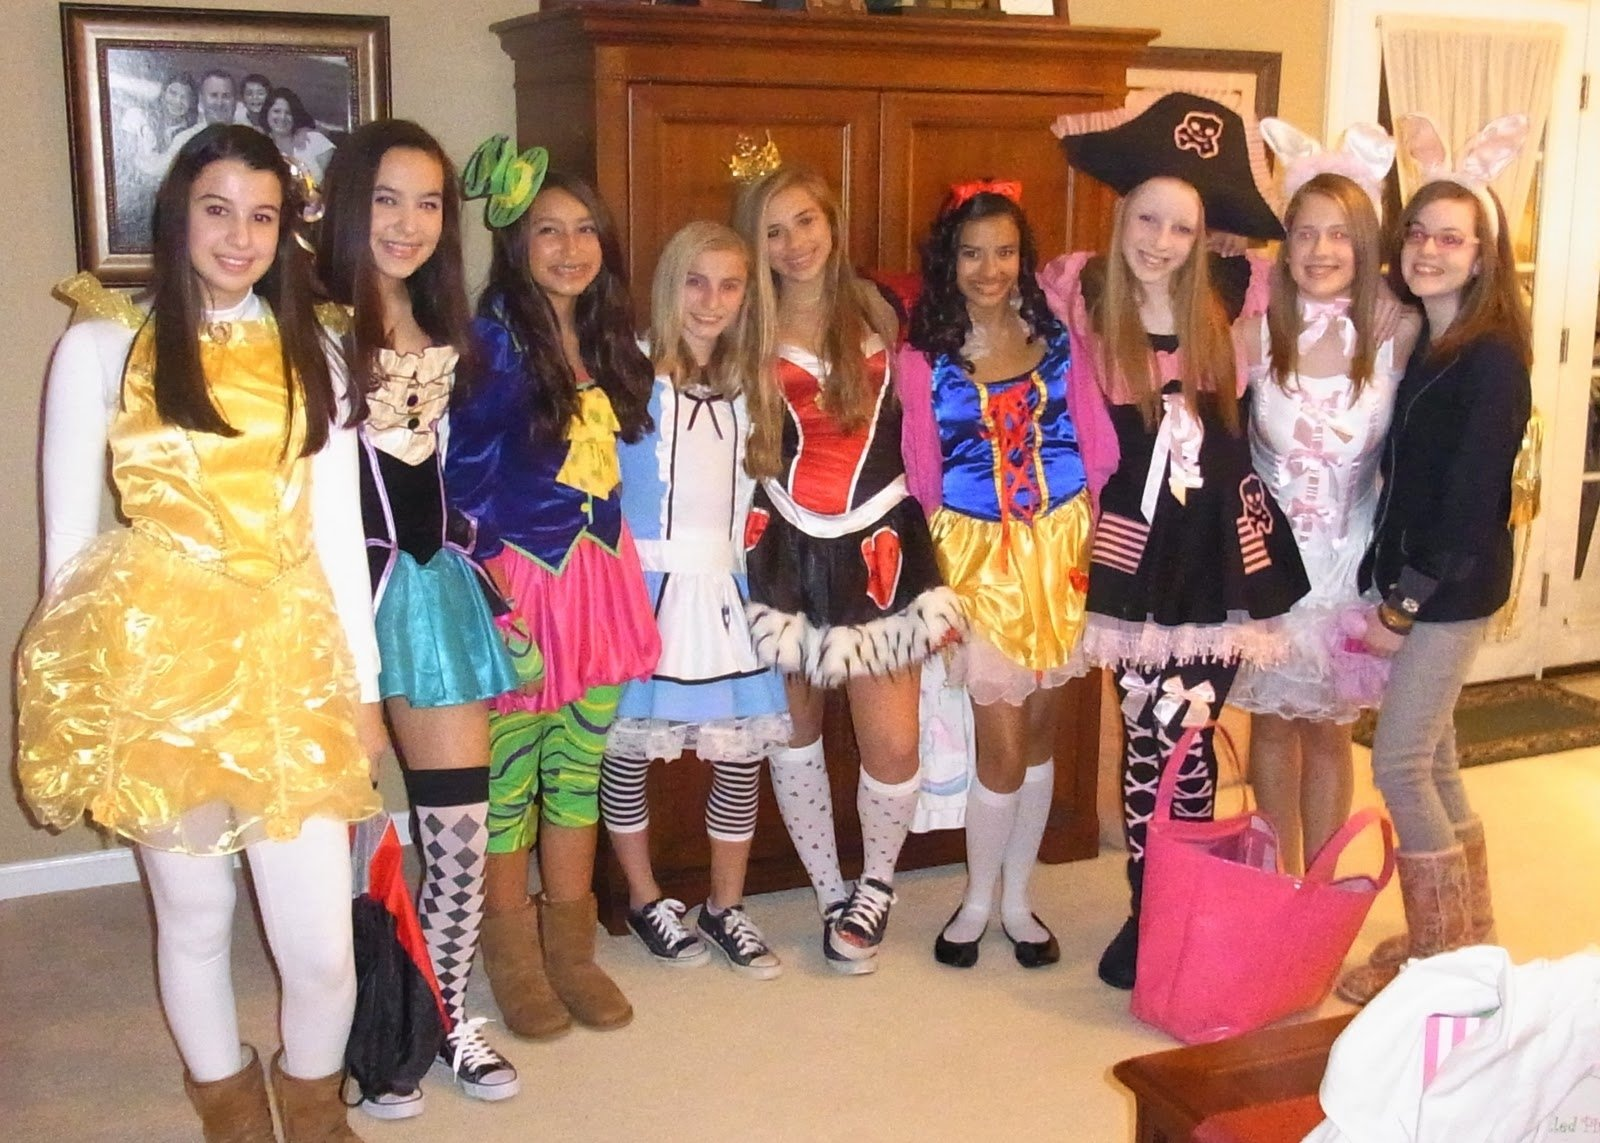 10 Trendy Group Of 4 Halloween Costume Ideas pinflankkks on cool halloween outfits pinterest 11 2020